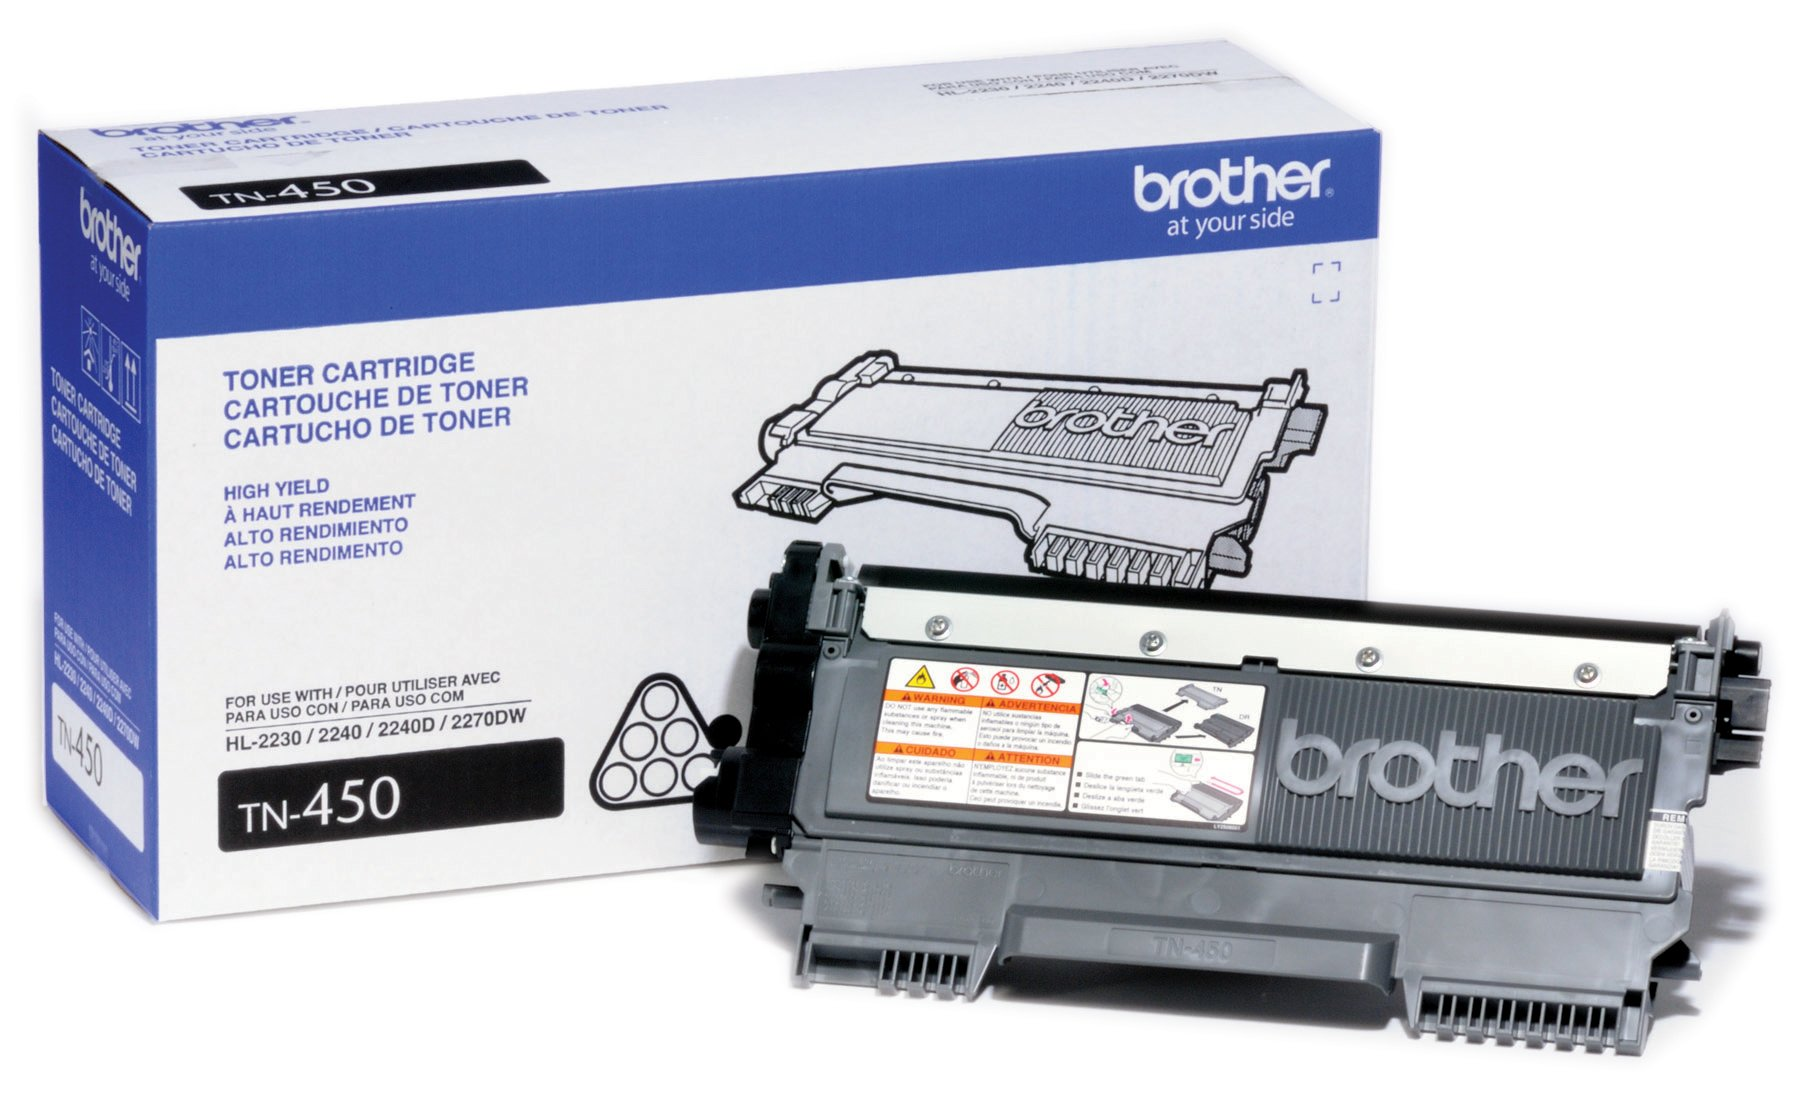 Brother Genuine High Yield Toner Cartridge, TN450, Replacement Black Toner, Page Yield Up To 2,600 Pages by Brother